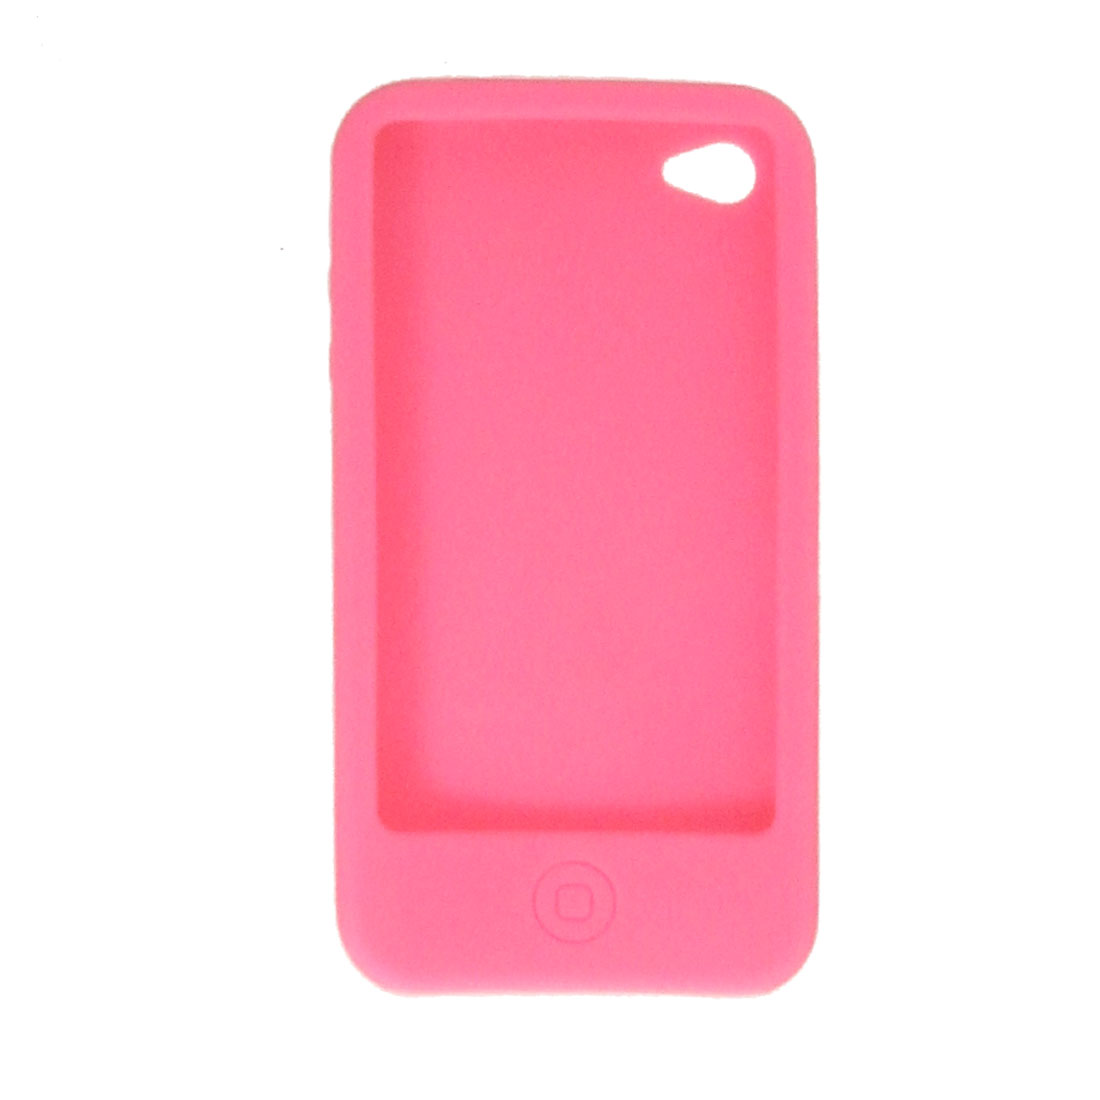 Fuchsia Soft Silicone Back Case Protector for Apple iPhone 4 4G